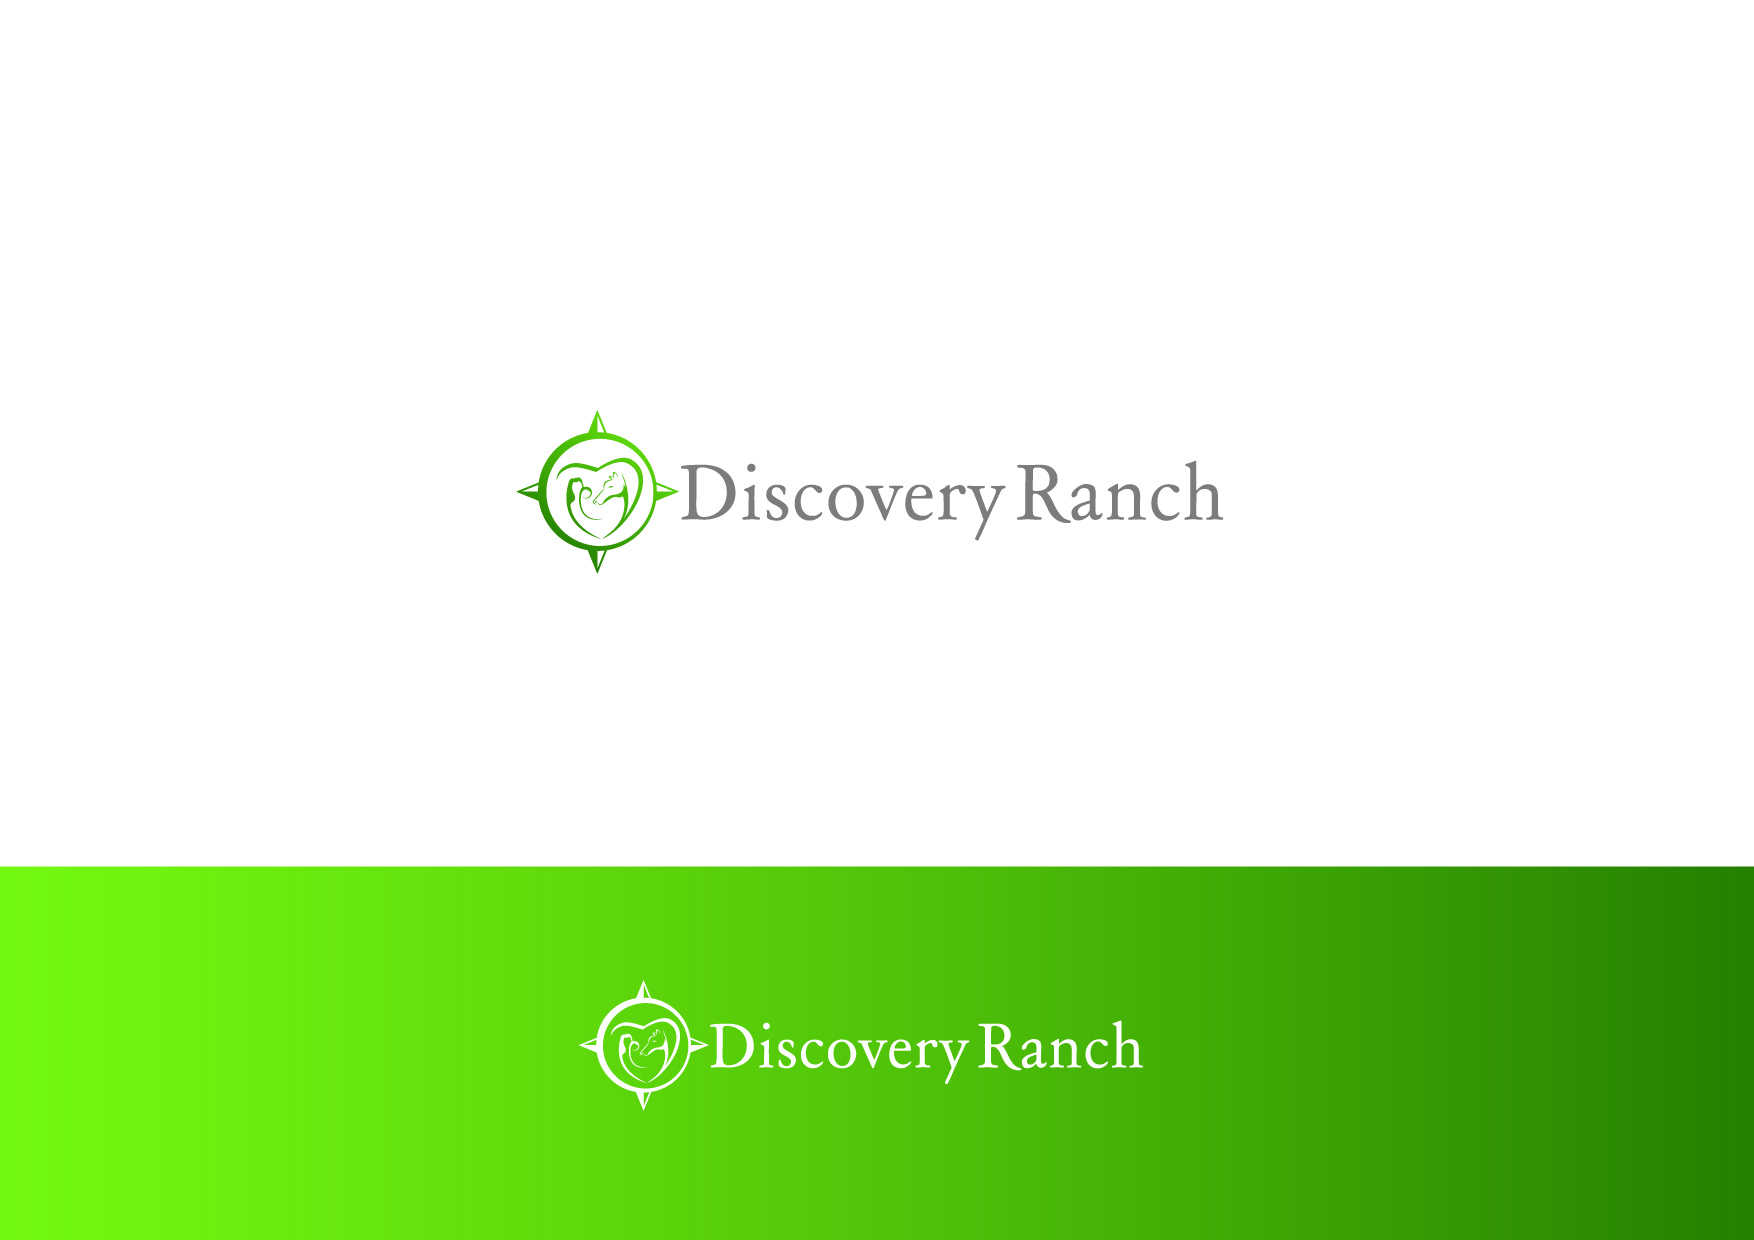 Logo Design by Osi Indra - Entry No. 23 in the Logo Design Contest Creative Logo Design for Discovery Ranch.